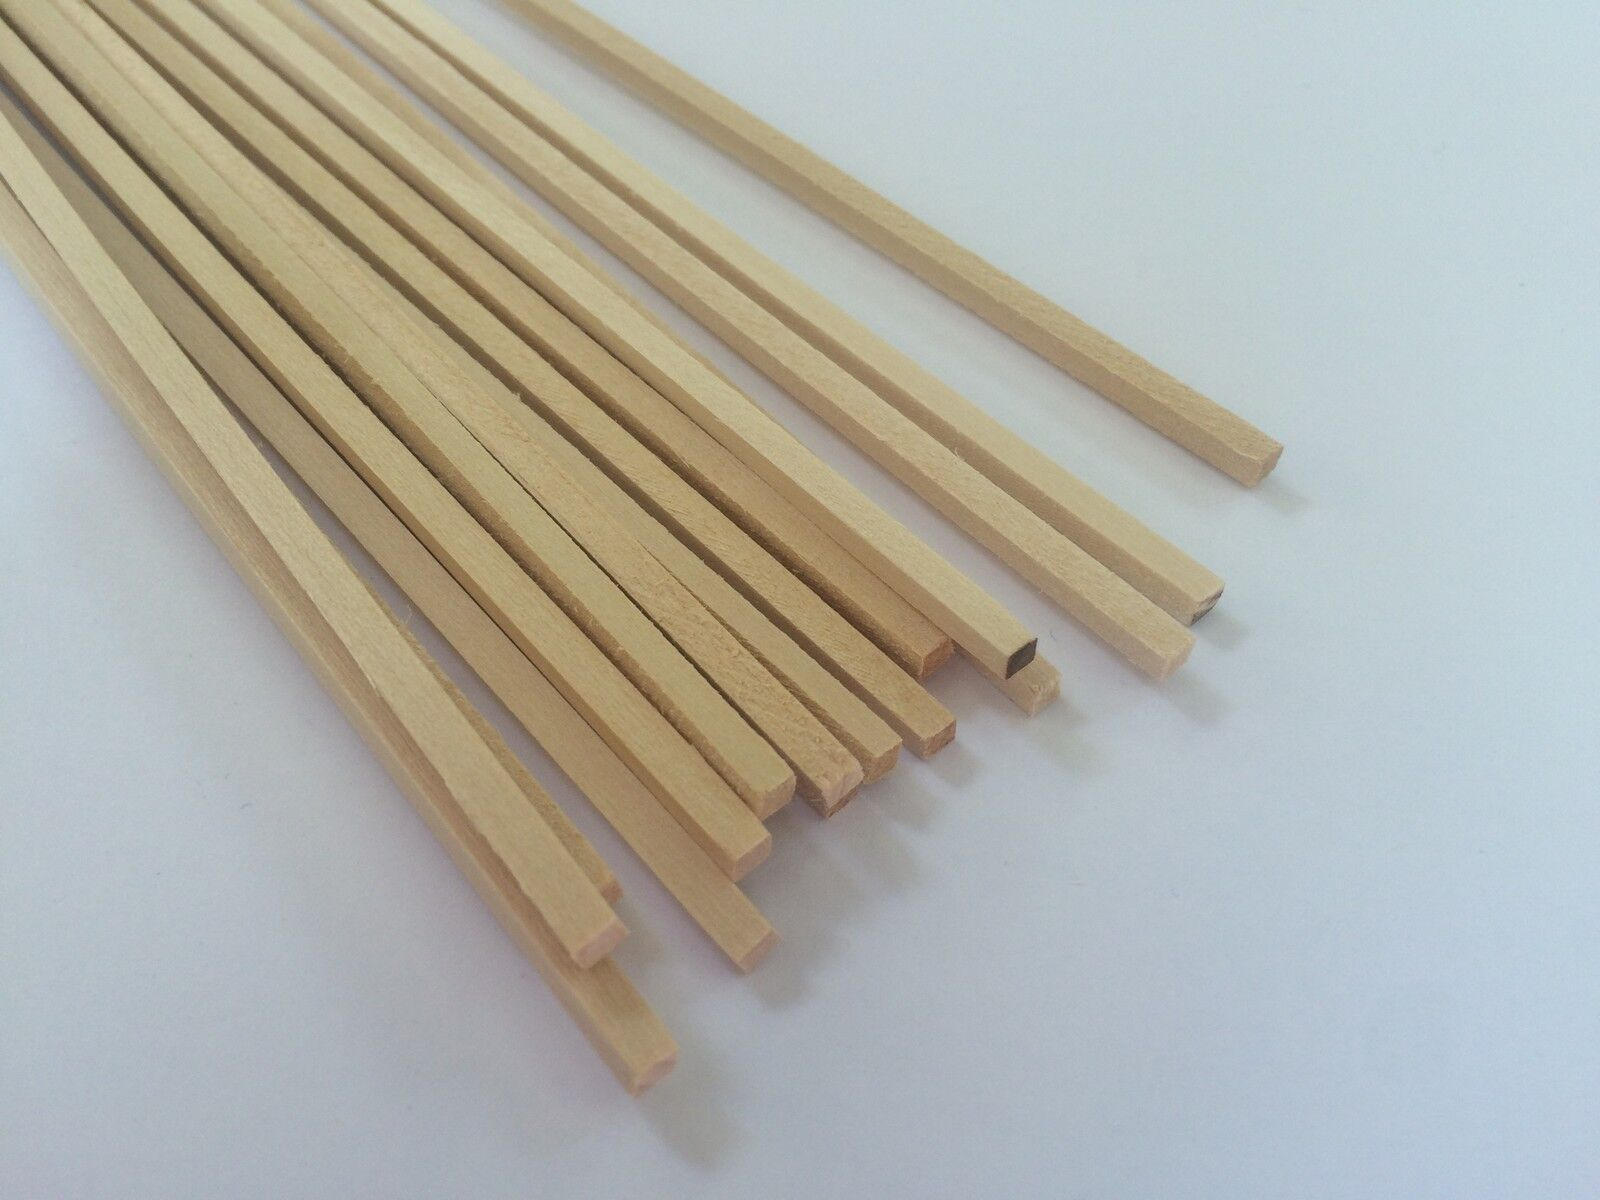 25 Metre Lengths of Lime Planking 2mm x 2mm Ideal for Boat Modelling